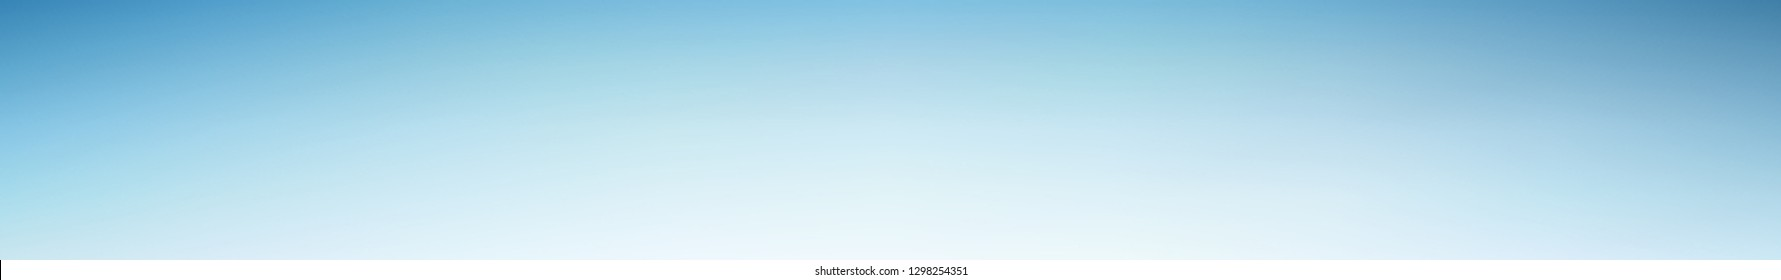 Panoramic light abstract background.  Horizontal view for a glass panels - skinali. Trendy soft colors and smooth blend. Modern template with gradient mesh.